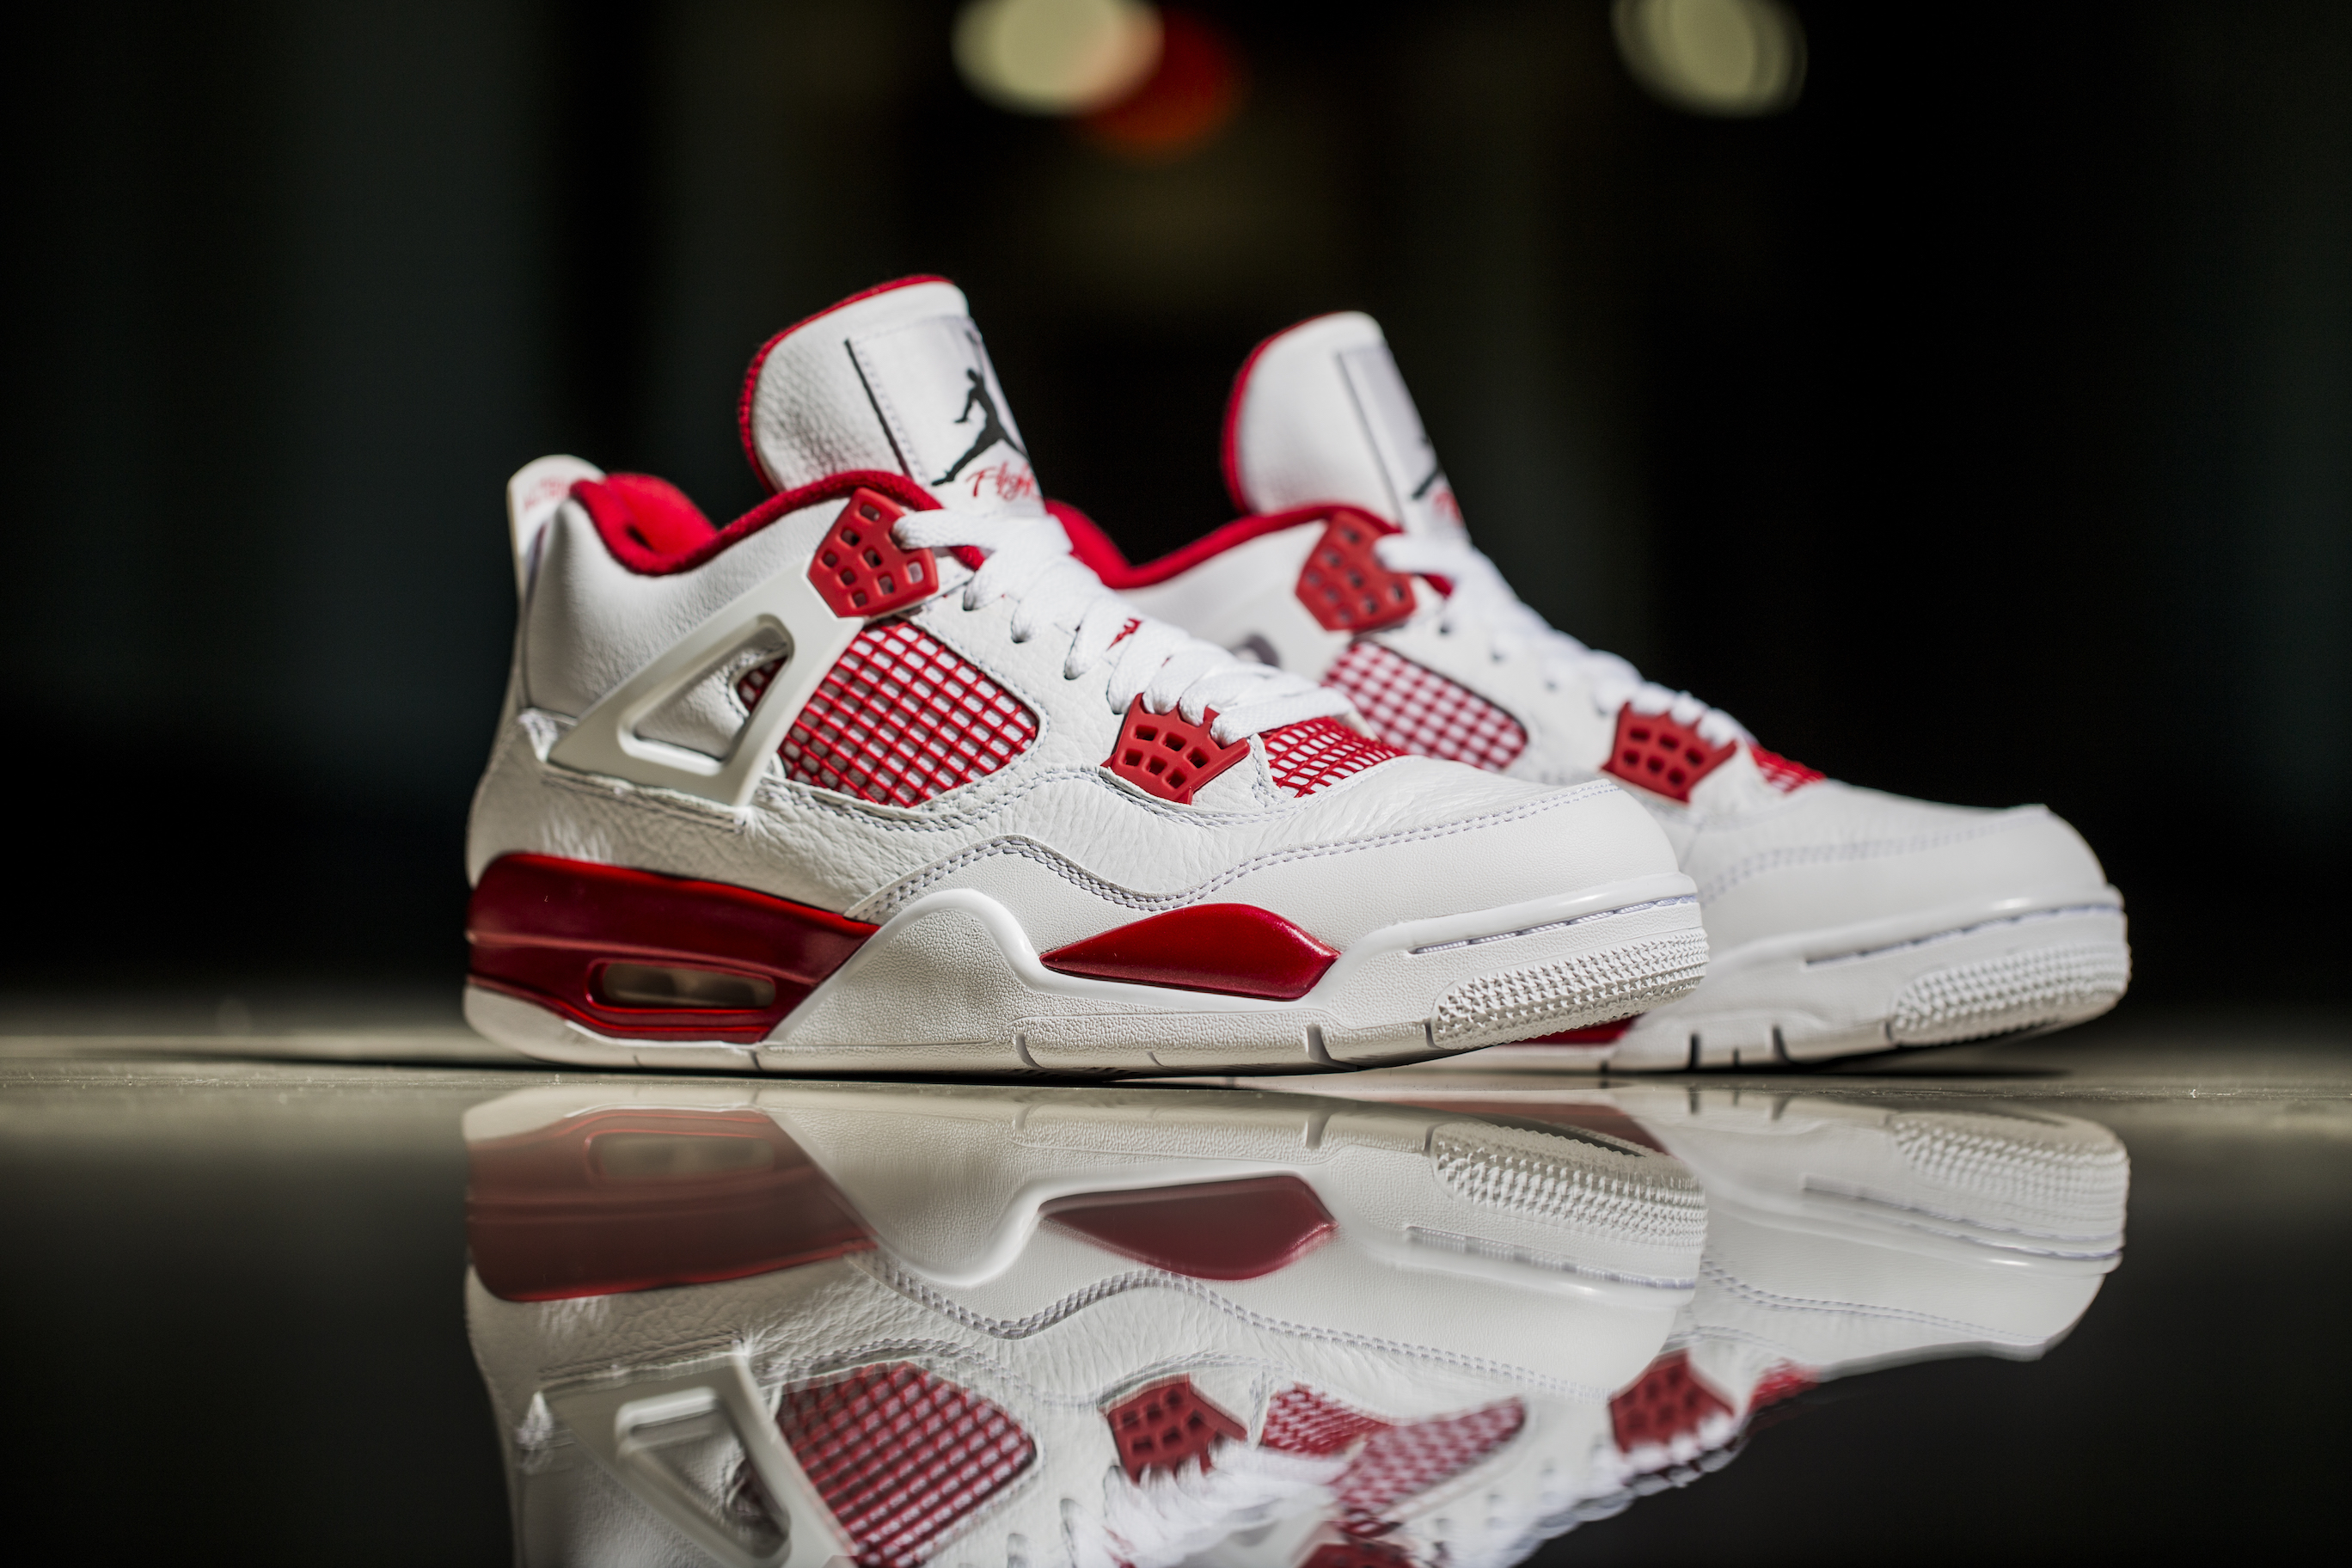 Air Jordan 4 Retro Alternativo 89 Bgr 8imtWGiE98